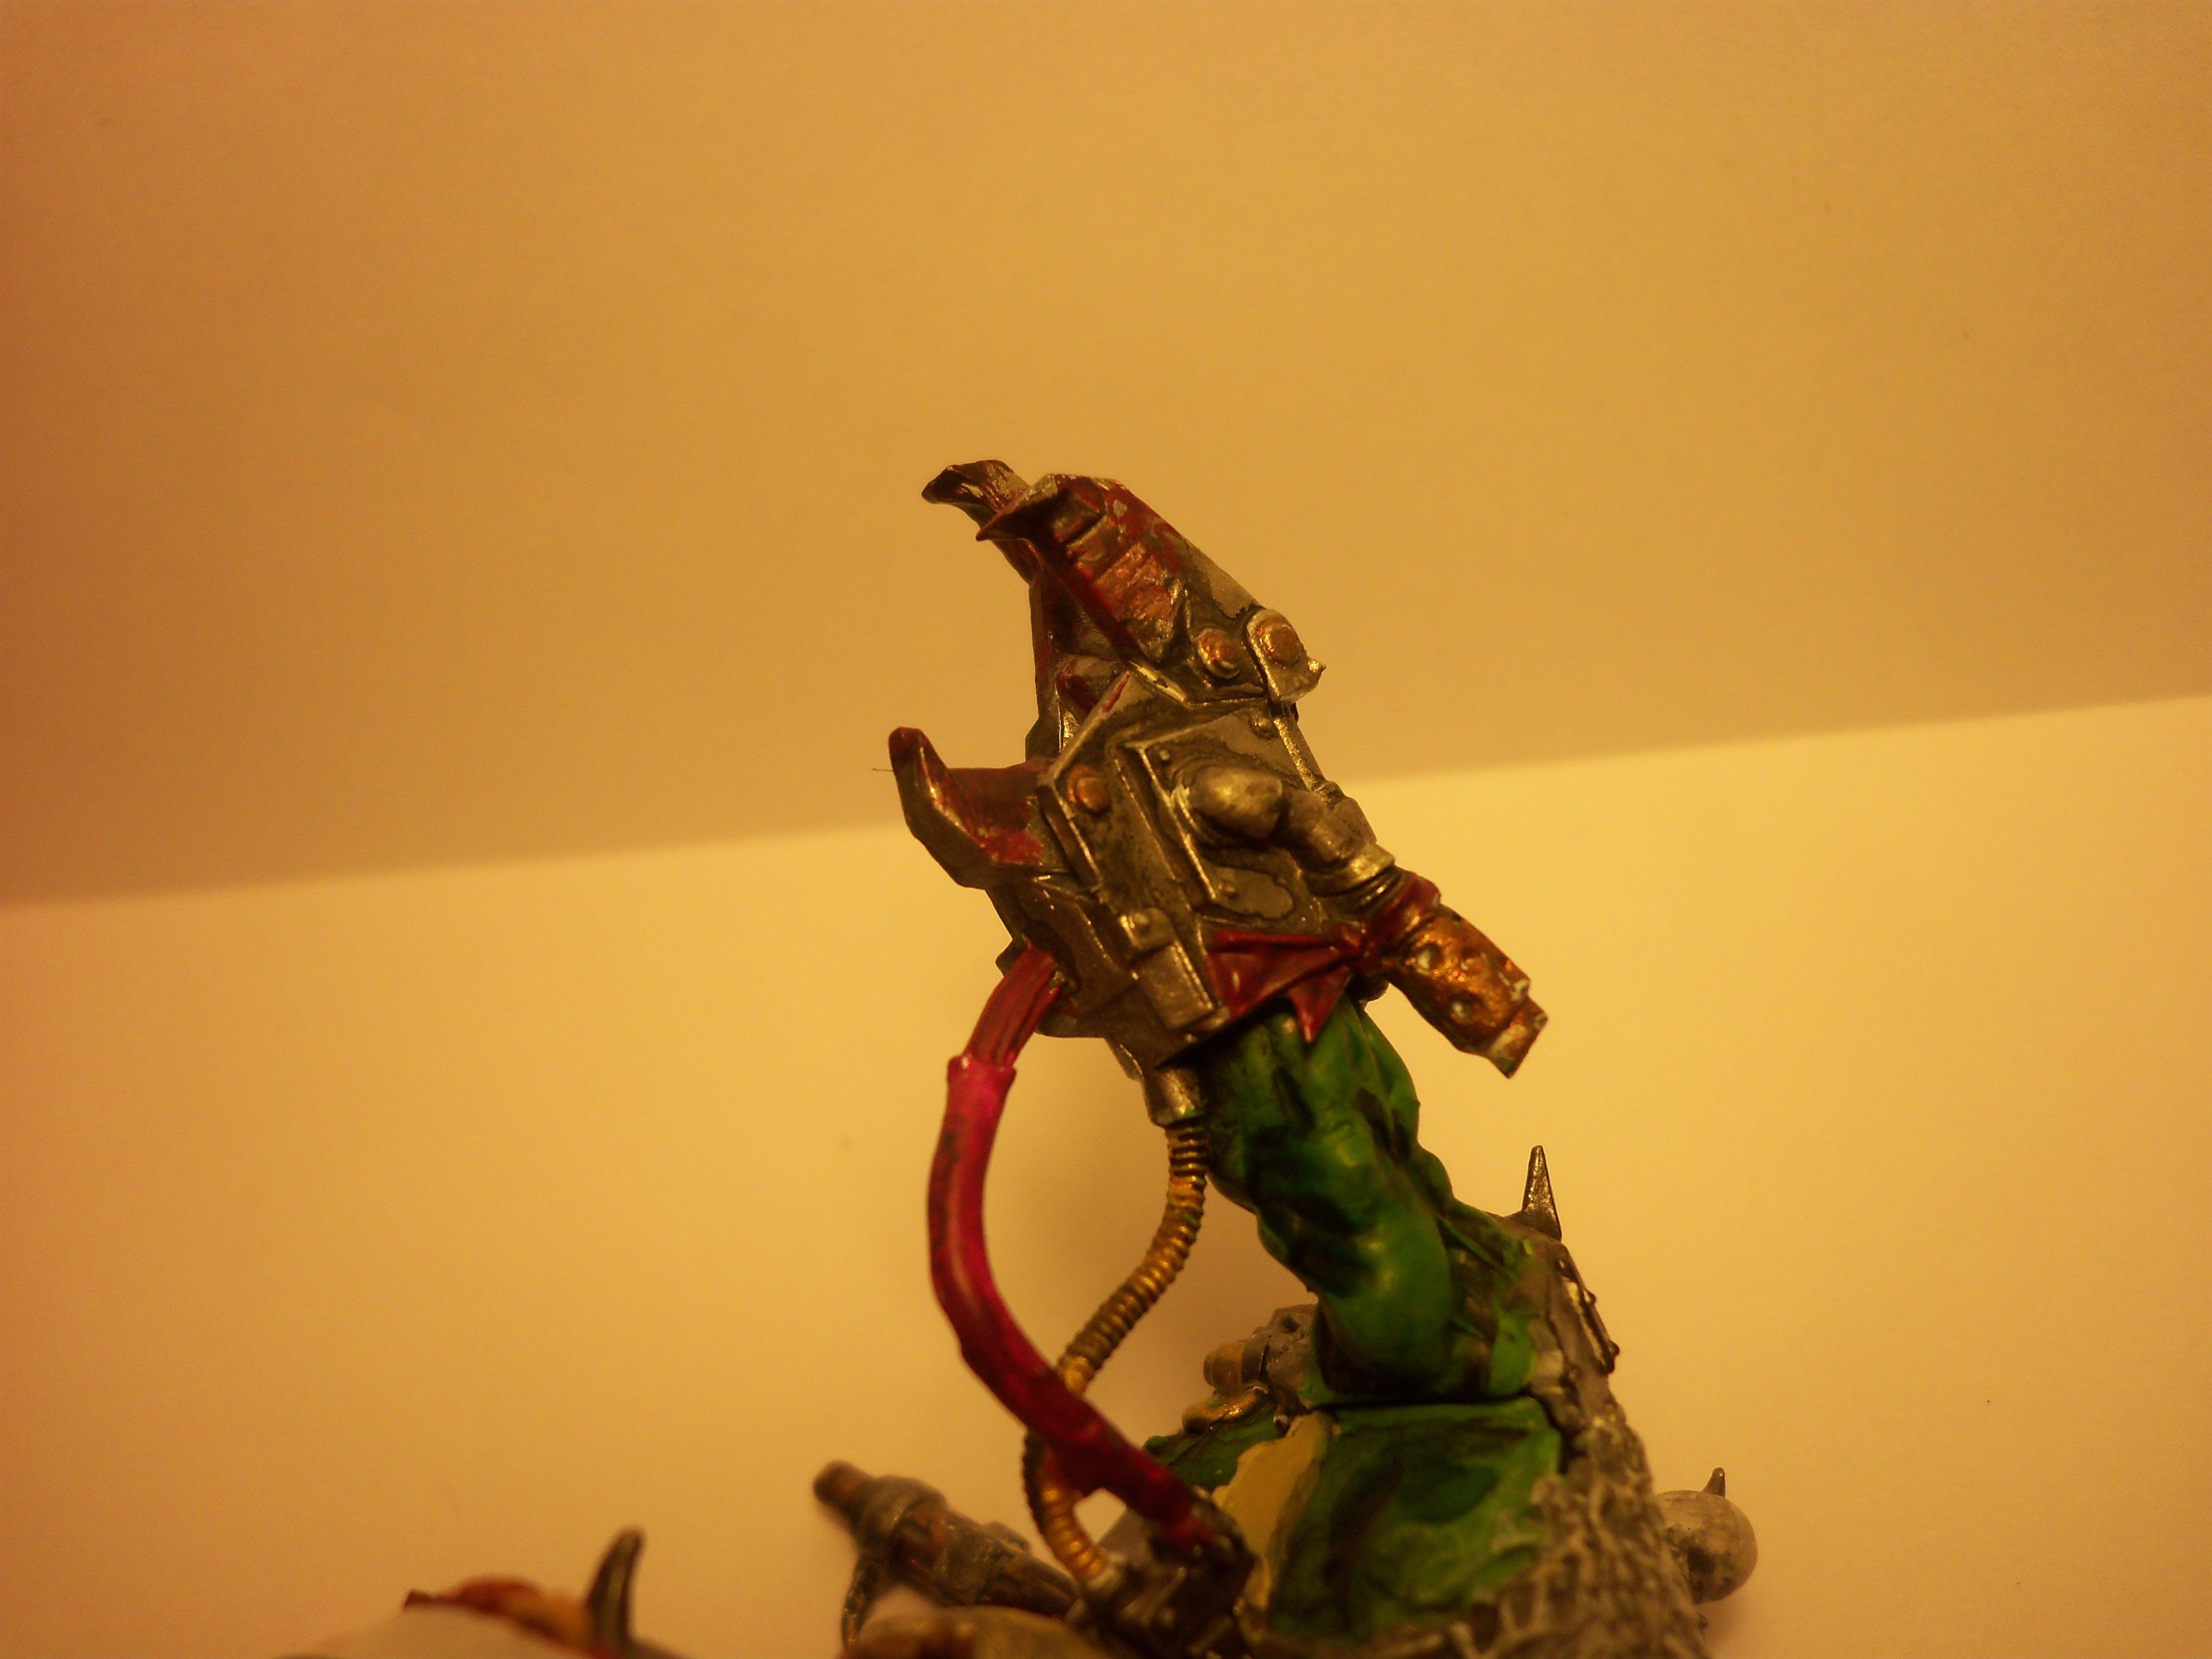 Blood, Power Claw, Warboss, Wires